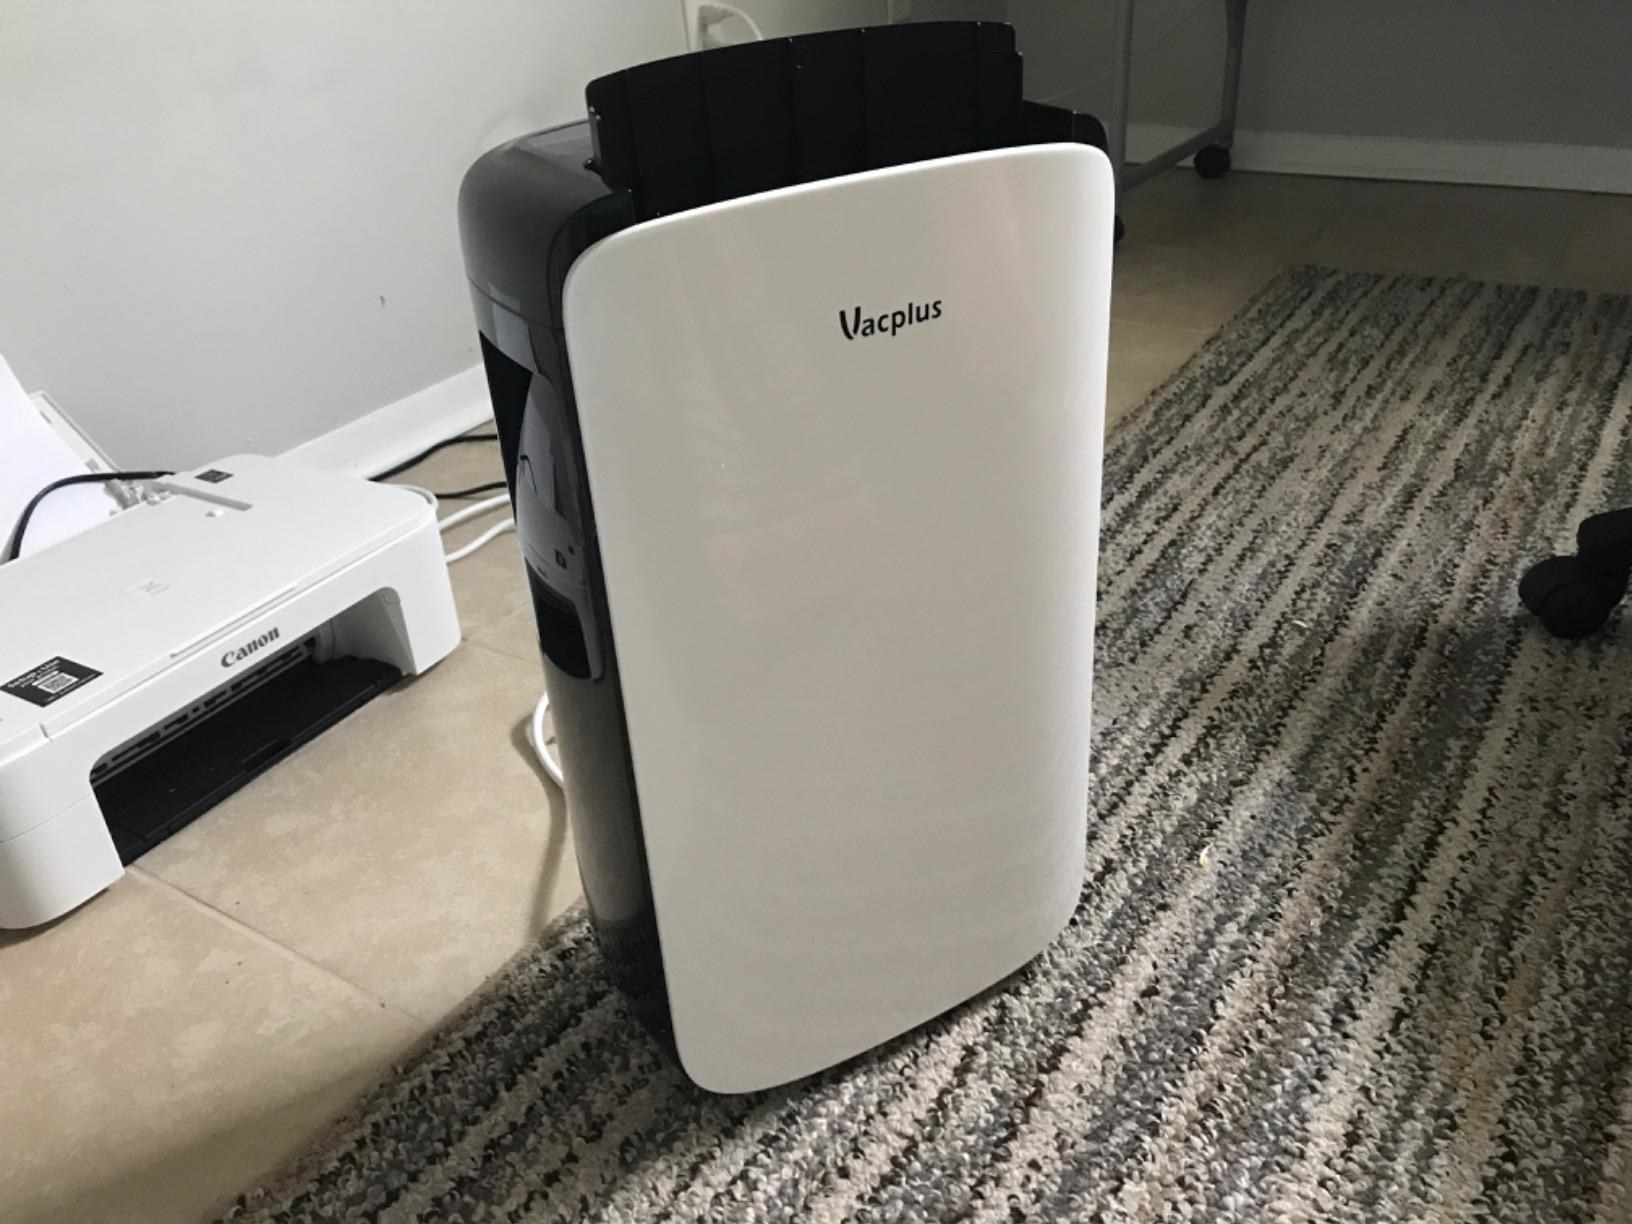 A black dehumidifier with a large white front panel